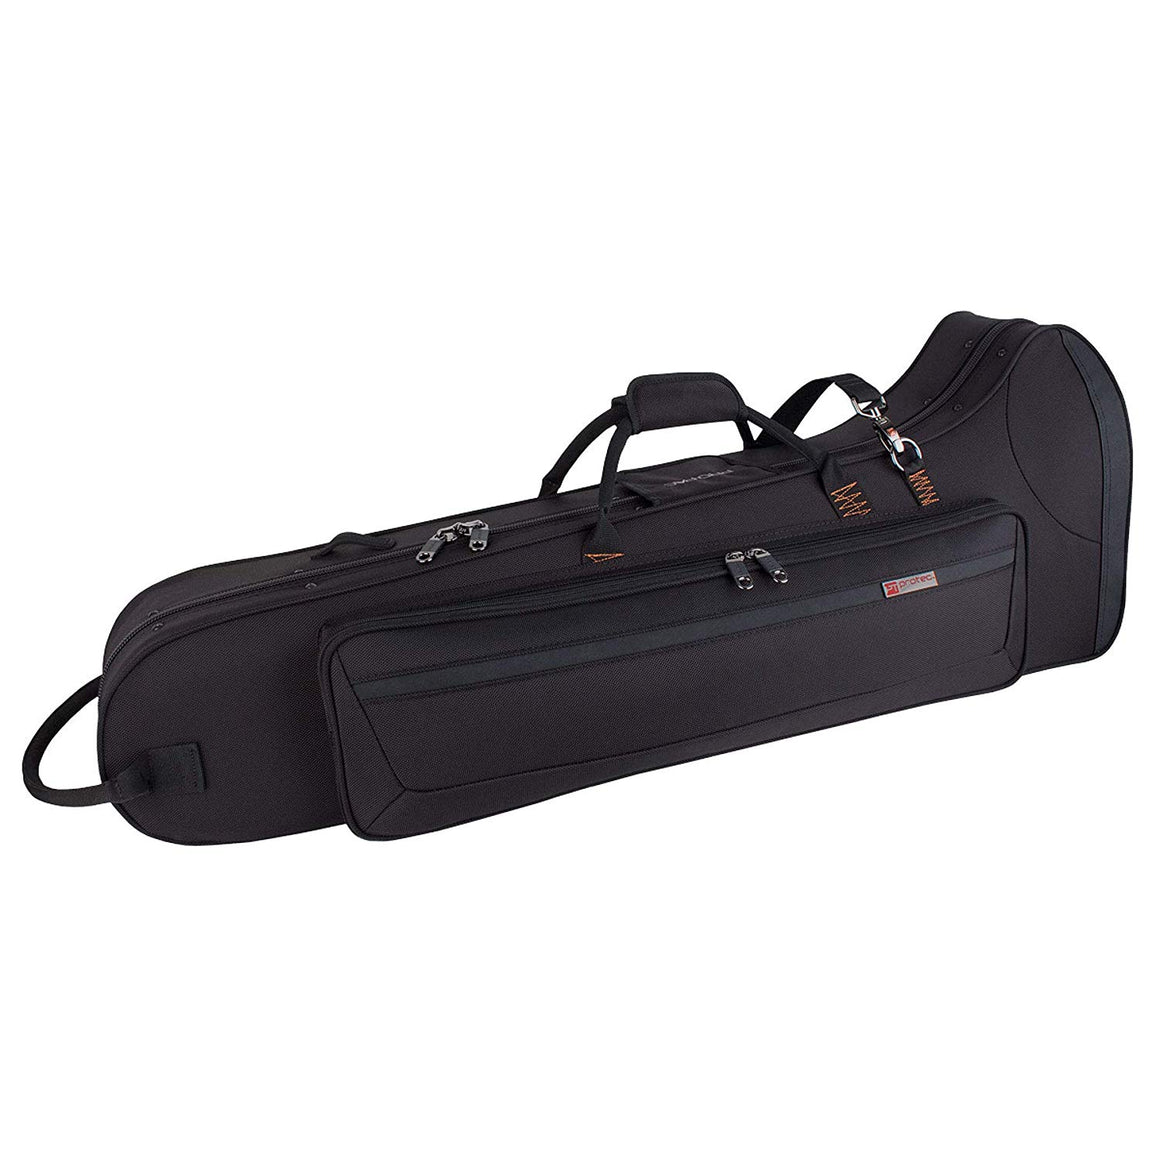 Protec PB306CT Tenor Trombone with F-Attachment PRO PAC Case – Contoured (Black)